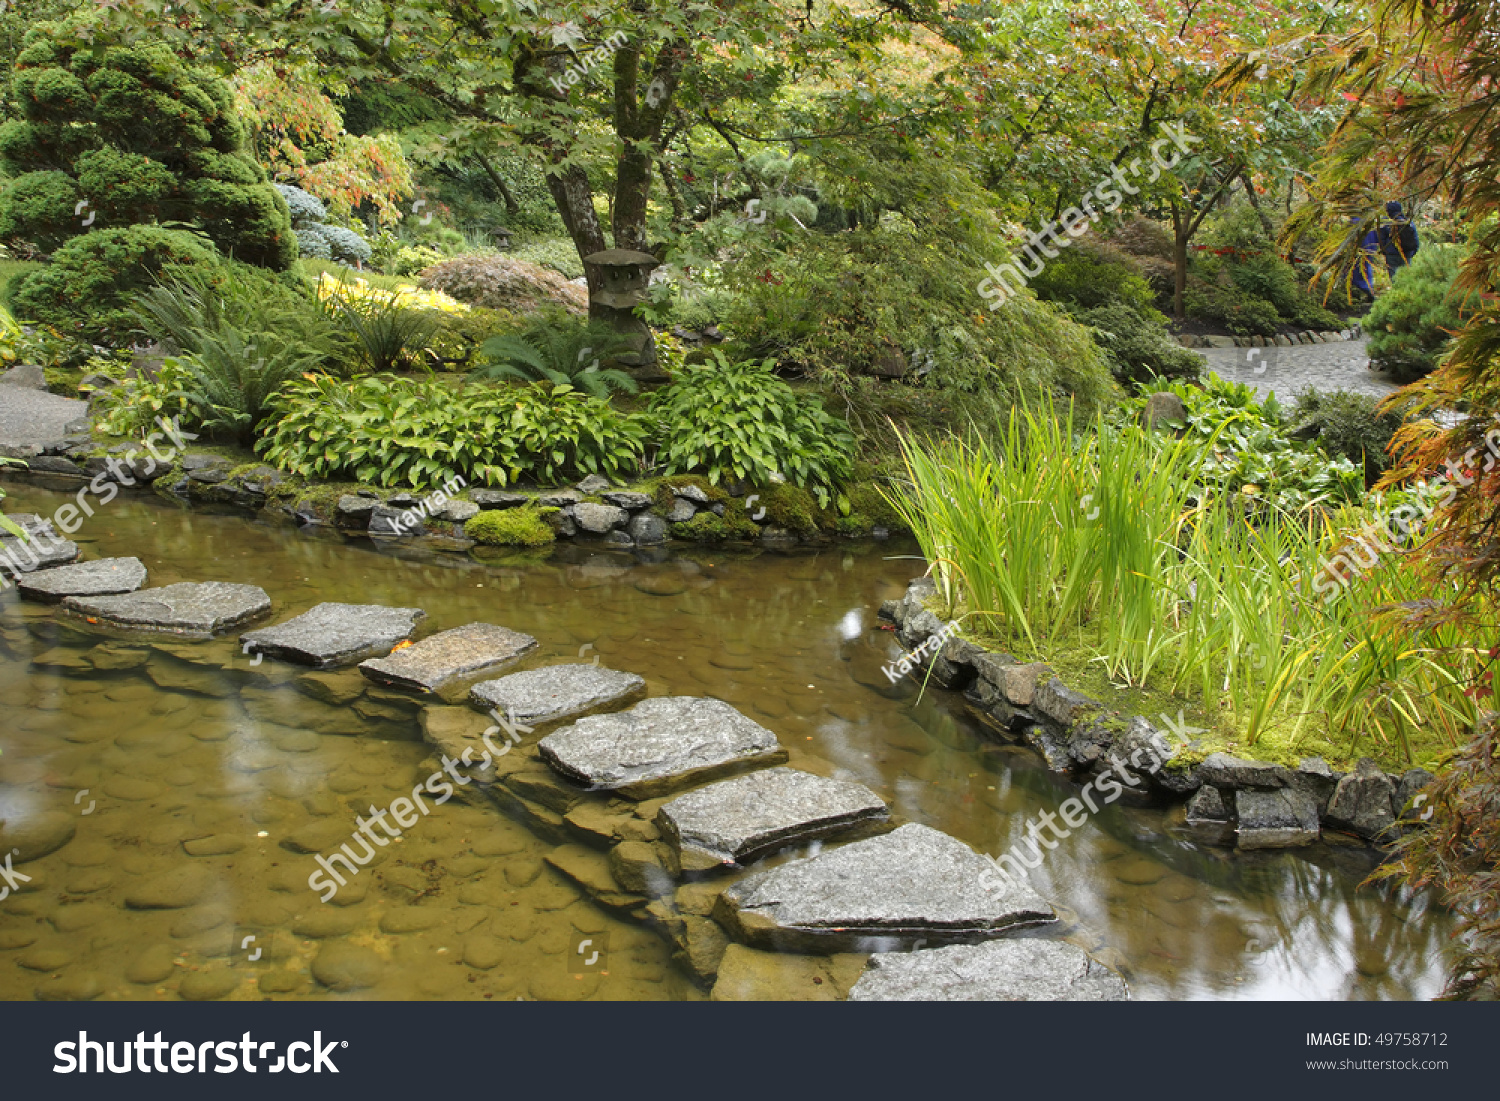 Traditional japanese gardens - Traditional Japanese Garden A Stream And A Decorative Path From Stones